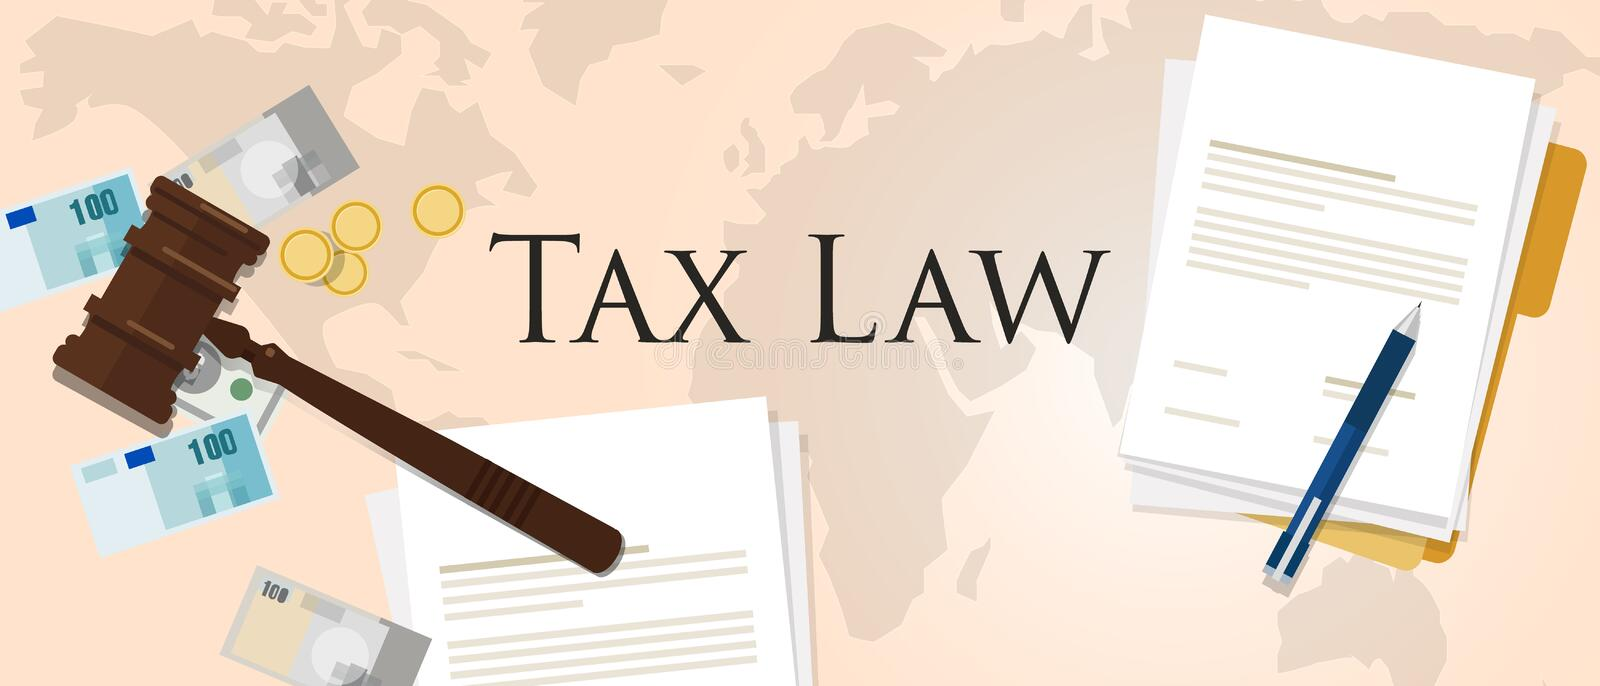 Tax law gavel hammer with money and paper international court of financial dispute. Revenue income financial verdict penalty vector royalty free illustration